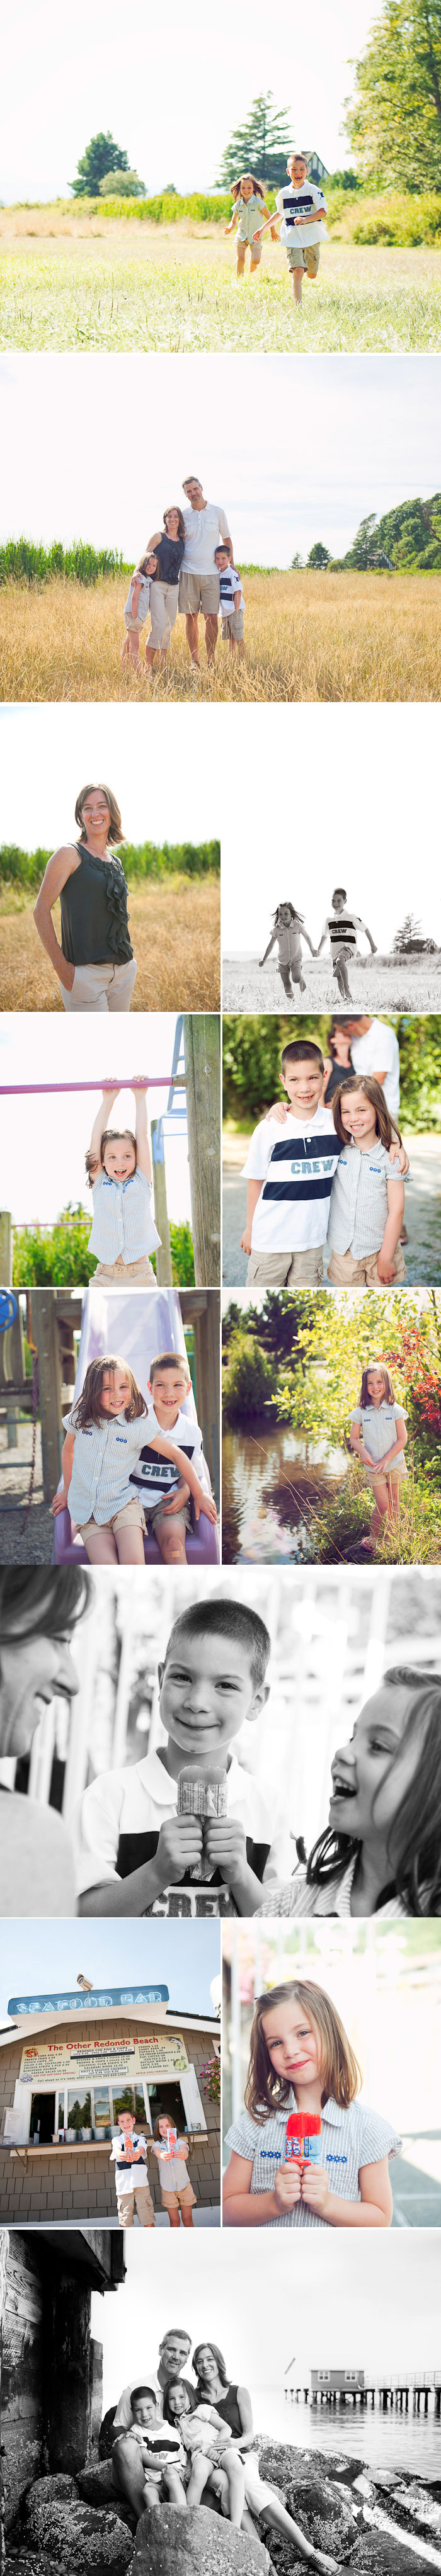 Burien Normandy Park Des Moines Family Photographer